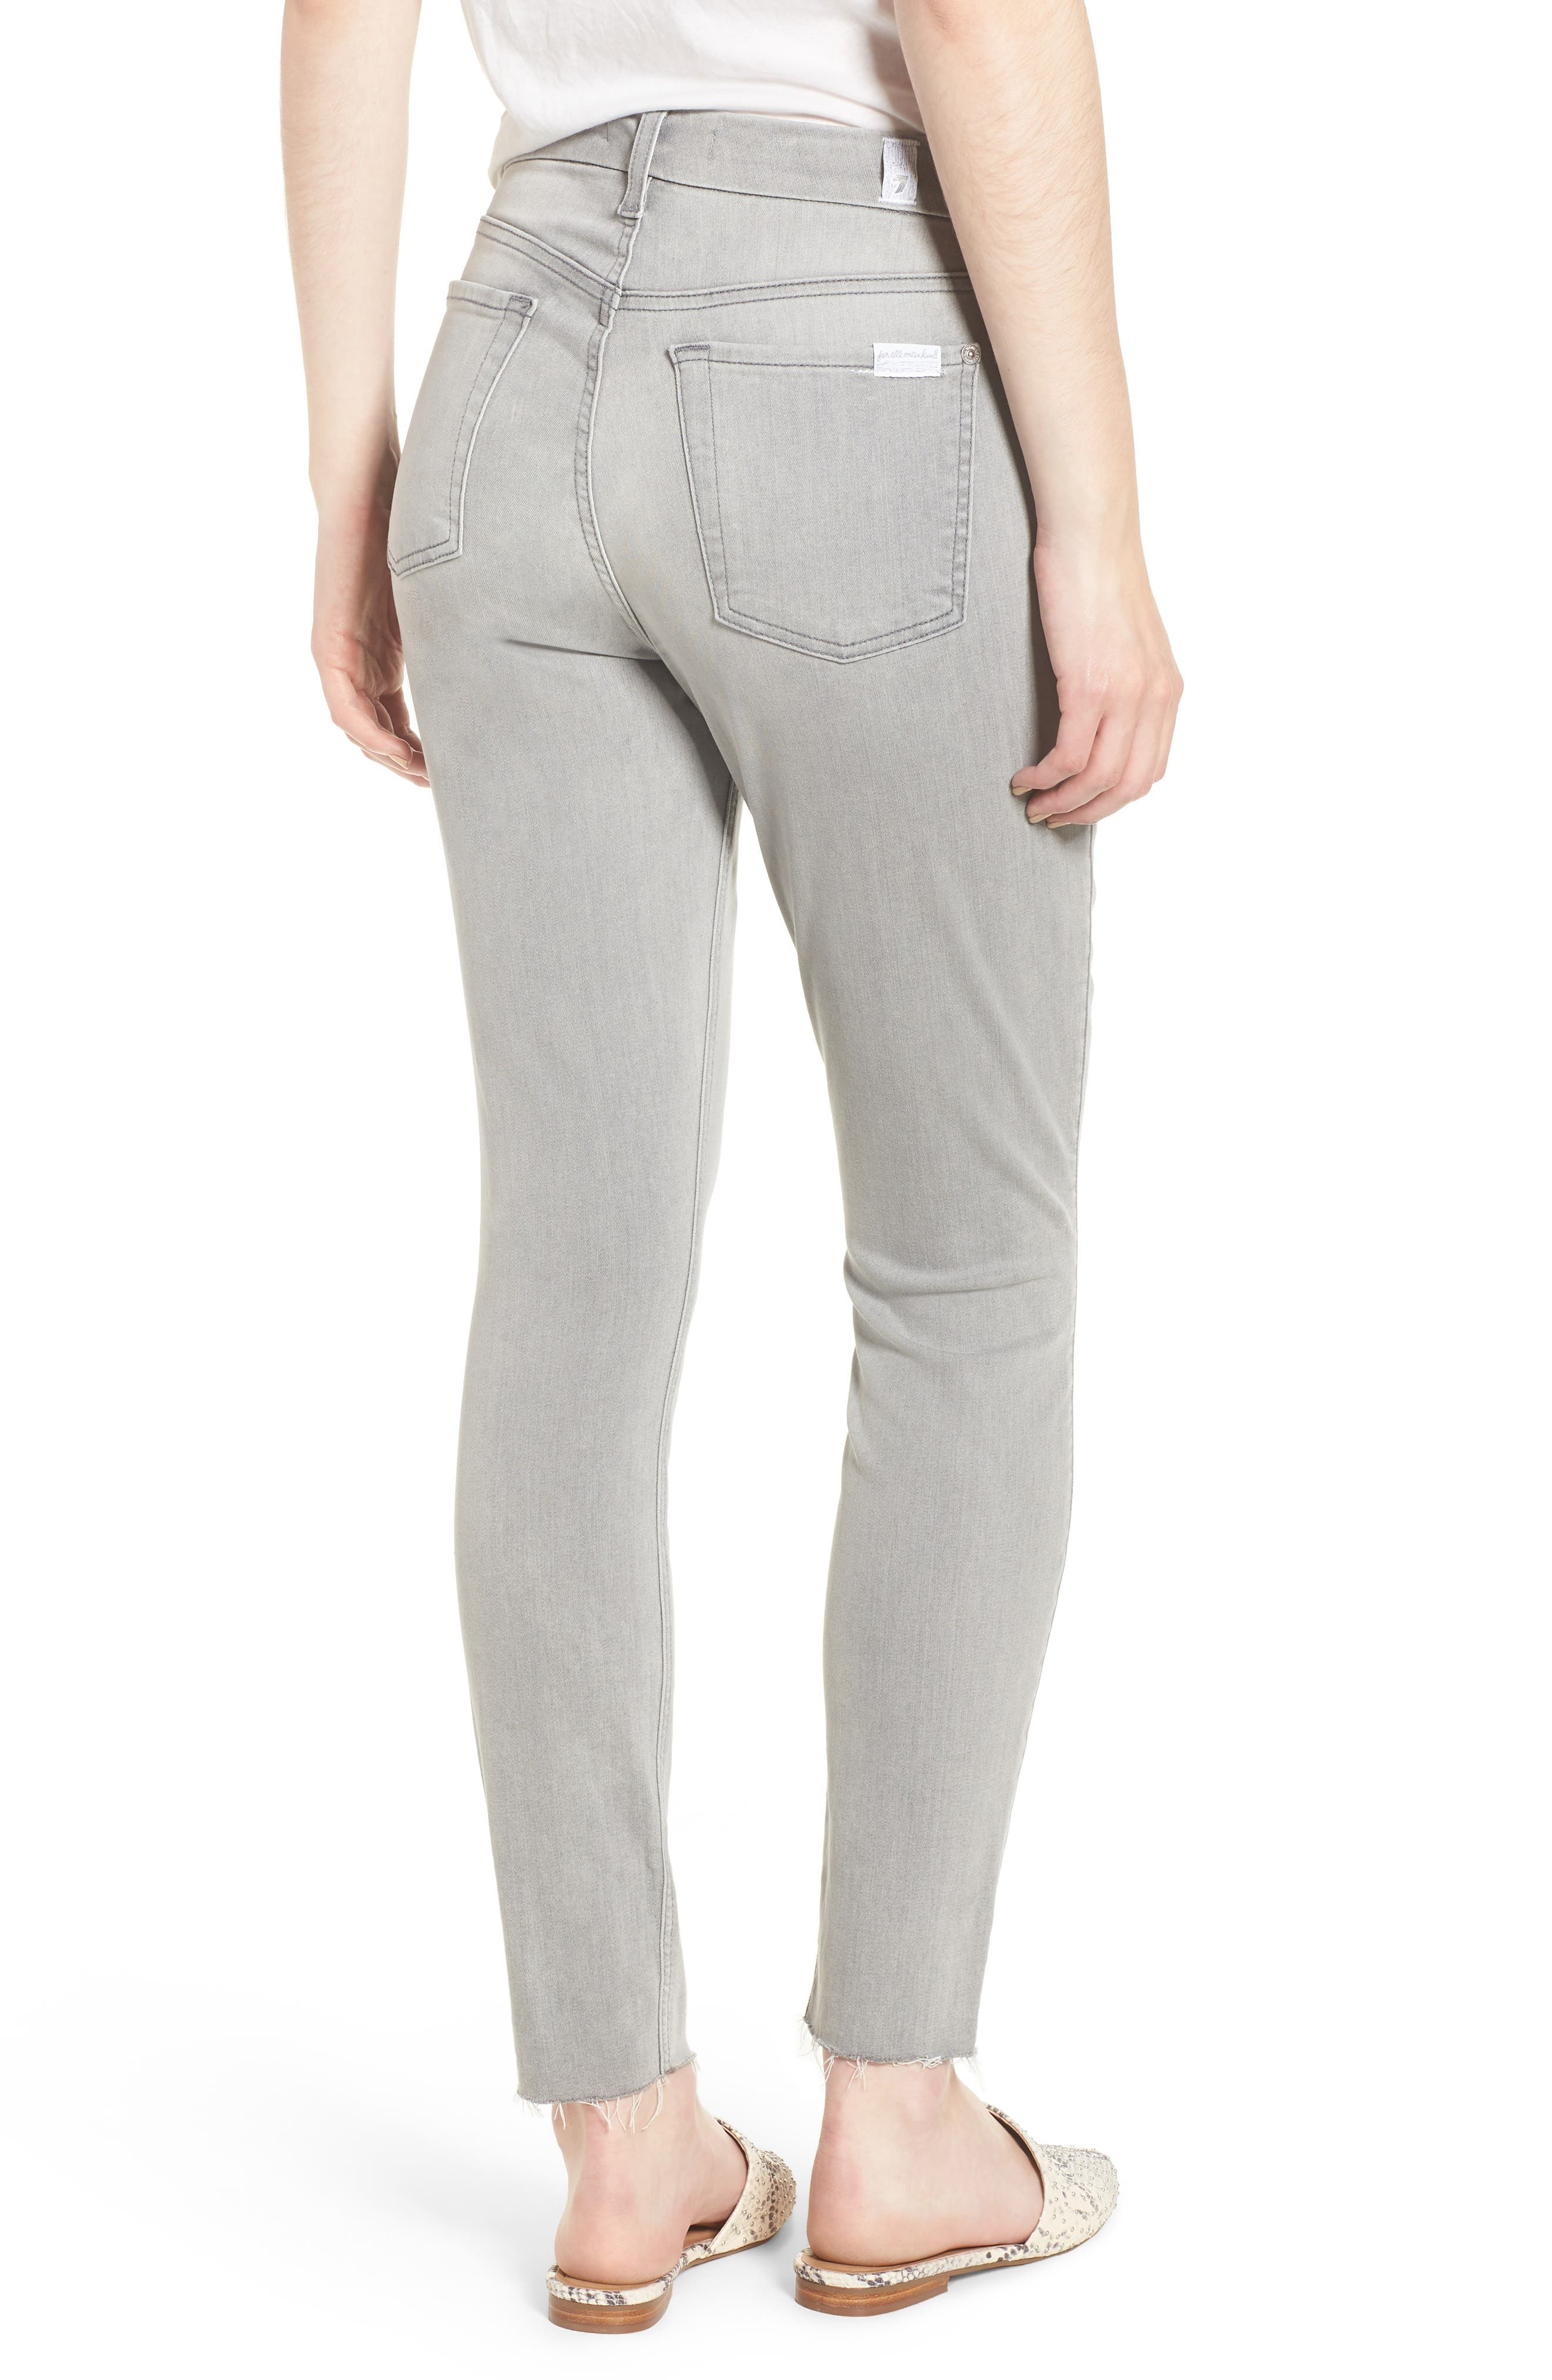 7 FOR ALL MANKIND<SUP>®</SUP>, b(air) High Waist Raw Hem Ankle Skinny Jeans, Alternate thumbnail 2, color, BAIR PURE SOFT GREY